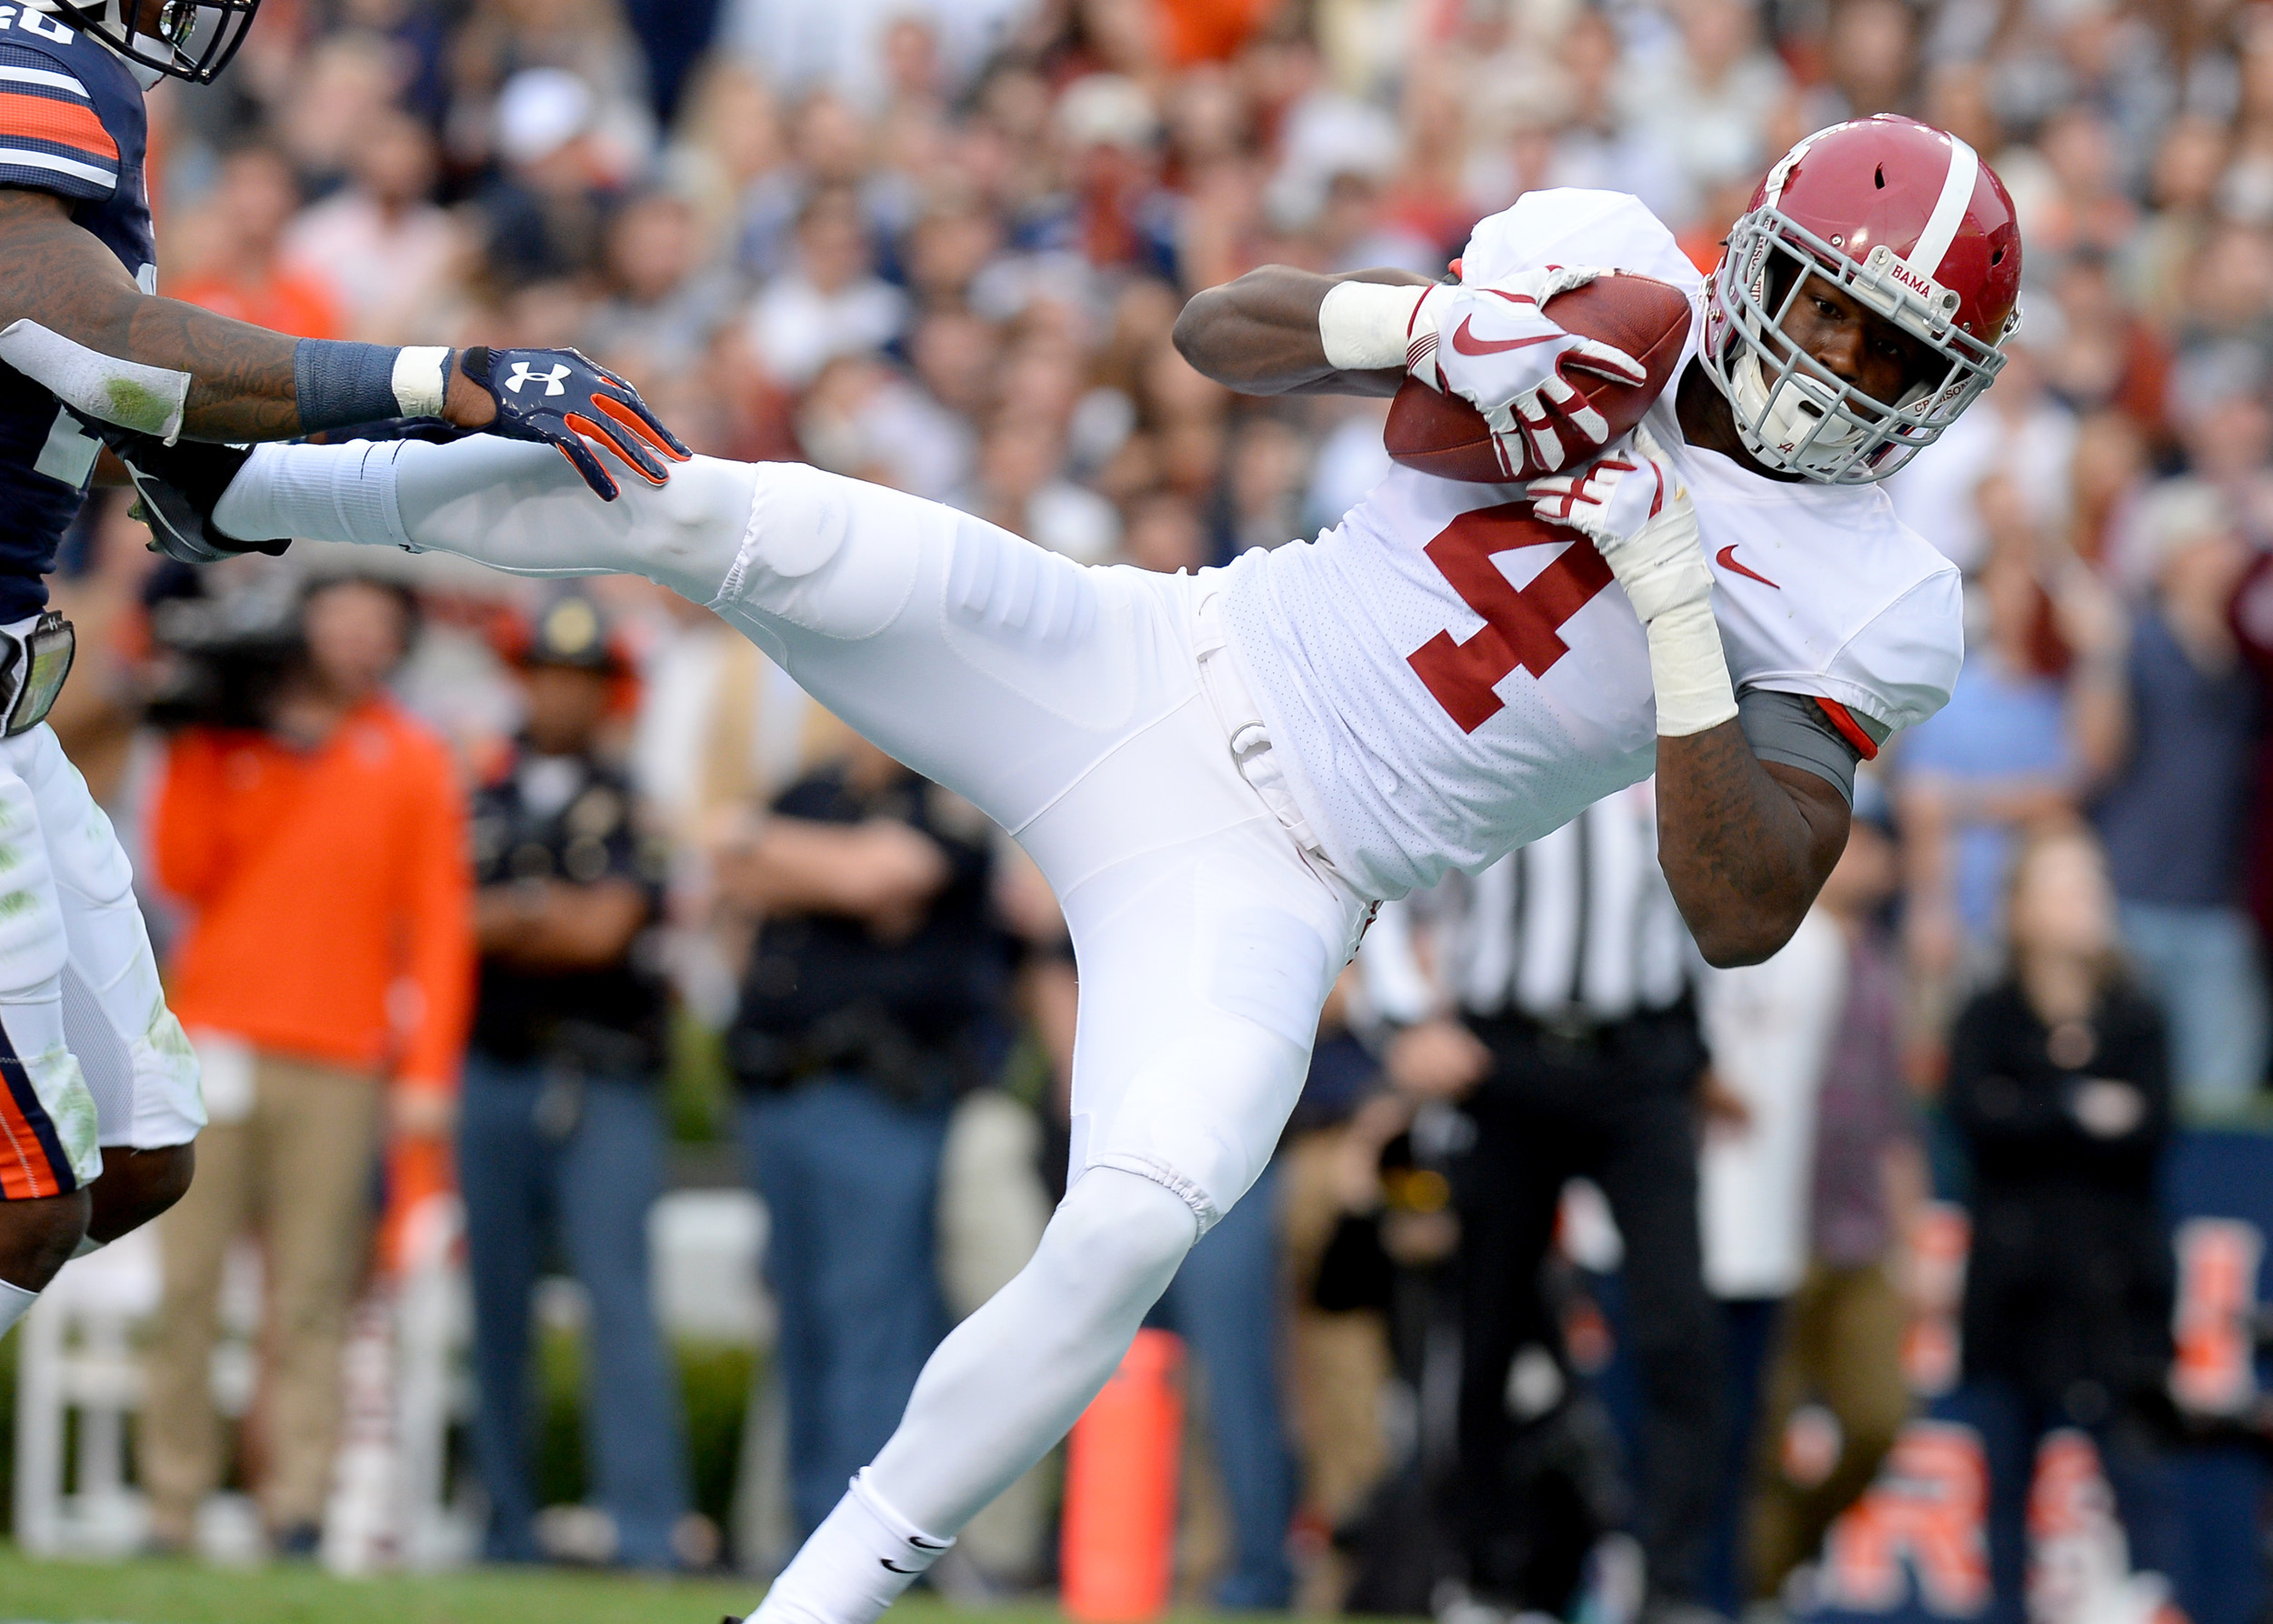 Alabama Crimson Tide wide receiver Jerry Jeudy (4) with a catch and a touchdown in the first half of the NCAA football game between the Alabama Crimson Tide and the Auburn Tigers on Nov. 25, 2017, at Jordan-Hare Stadium in Auburn, Ala. (Photo by Jeff Johnsey)